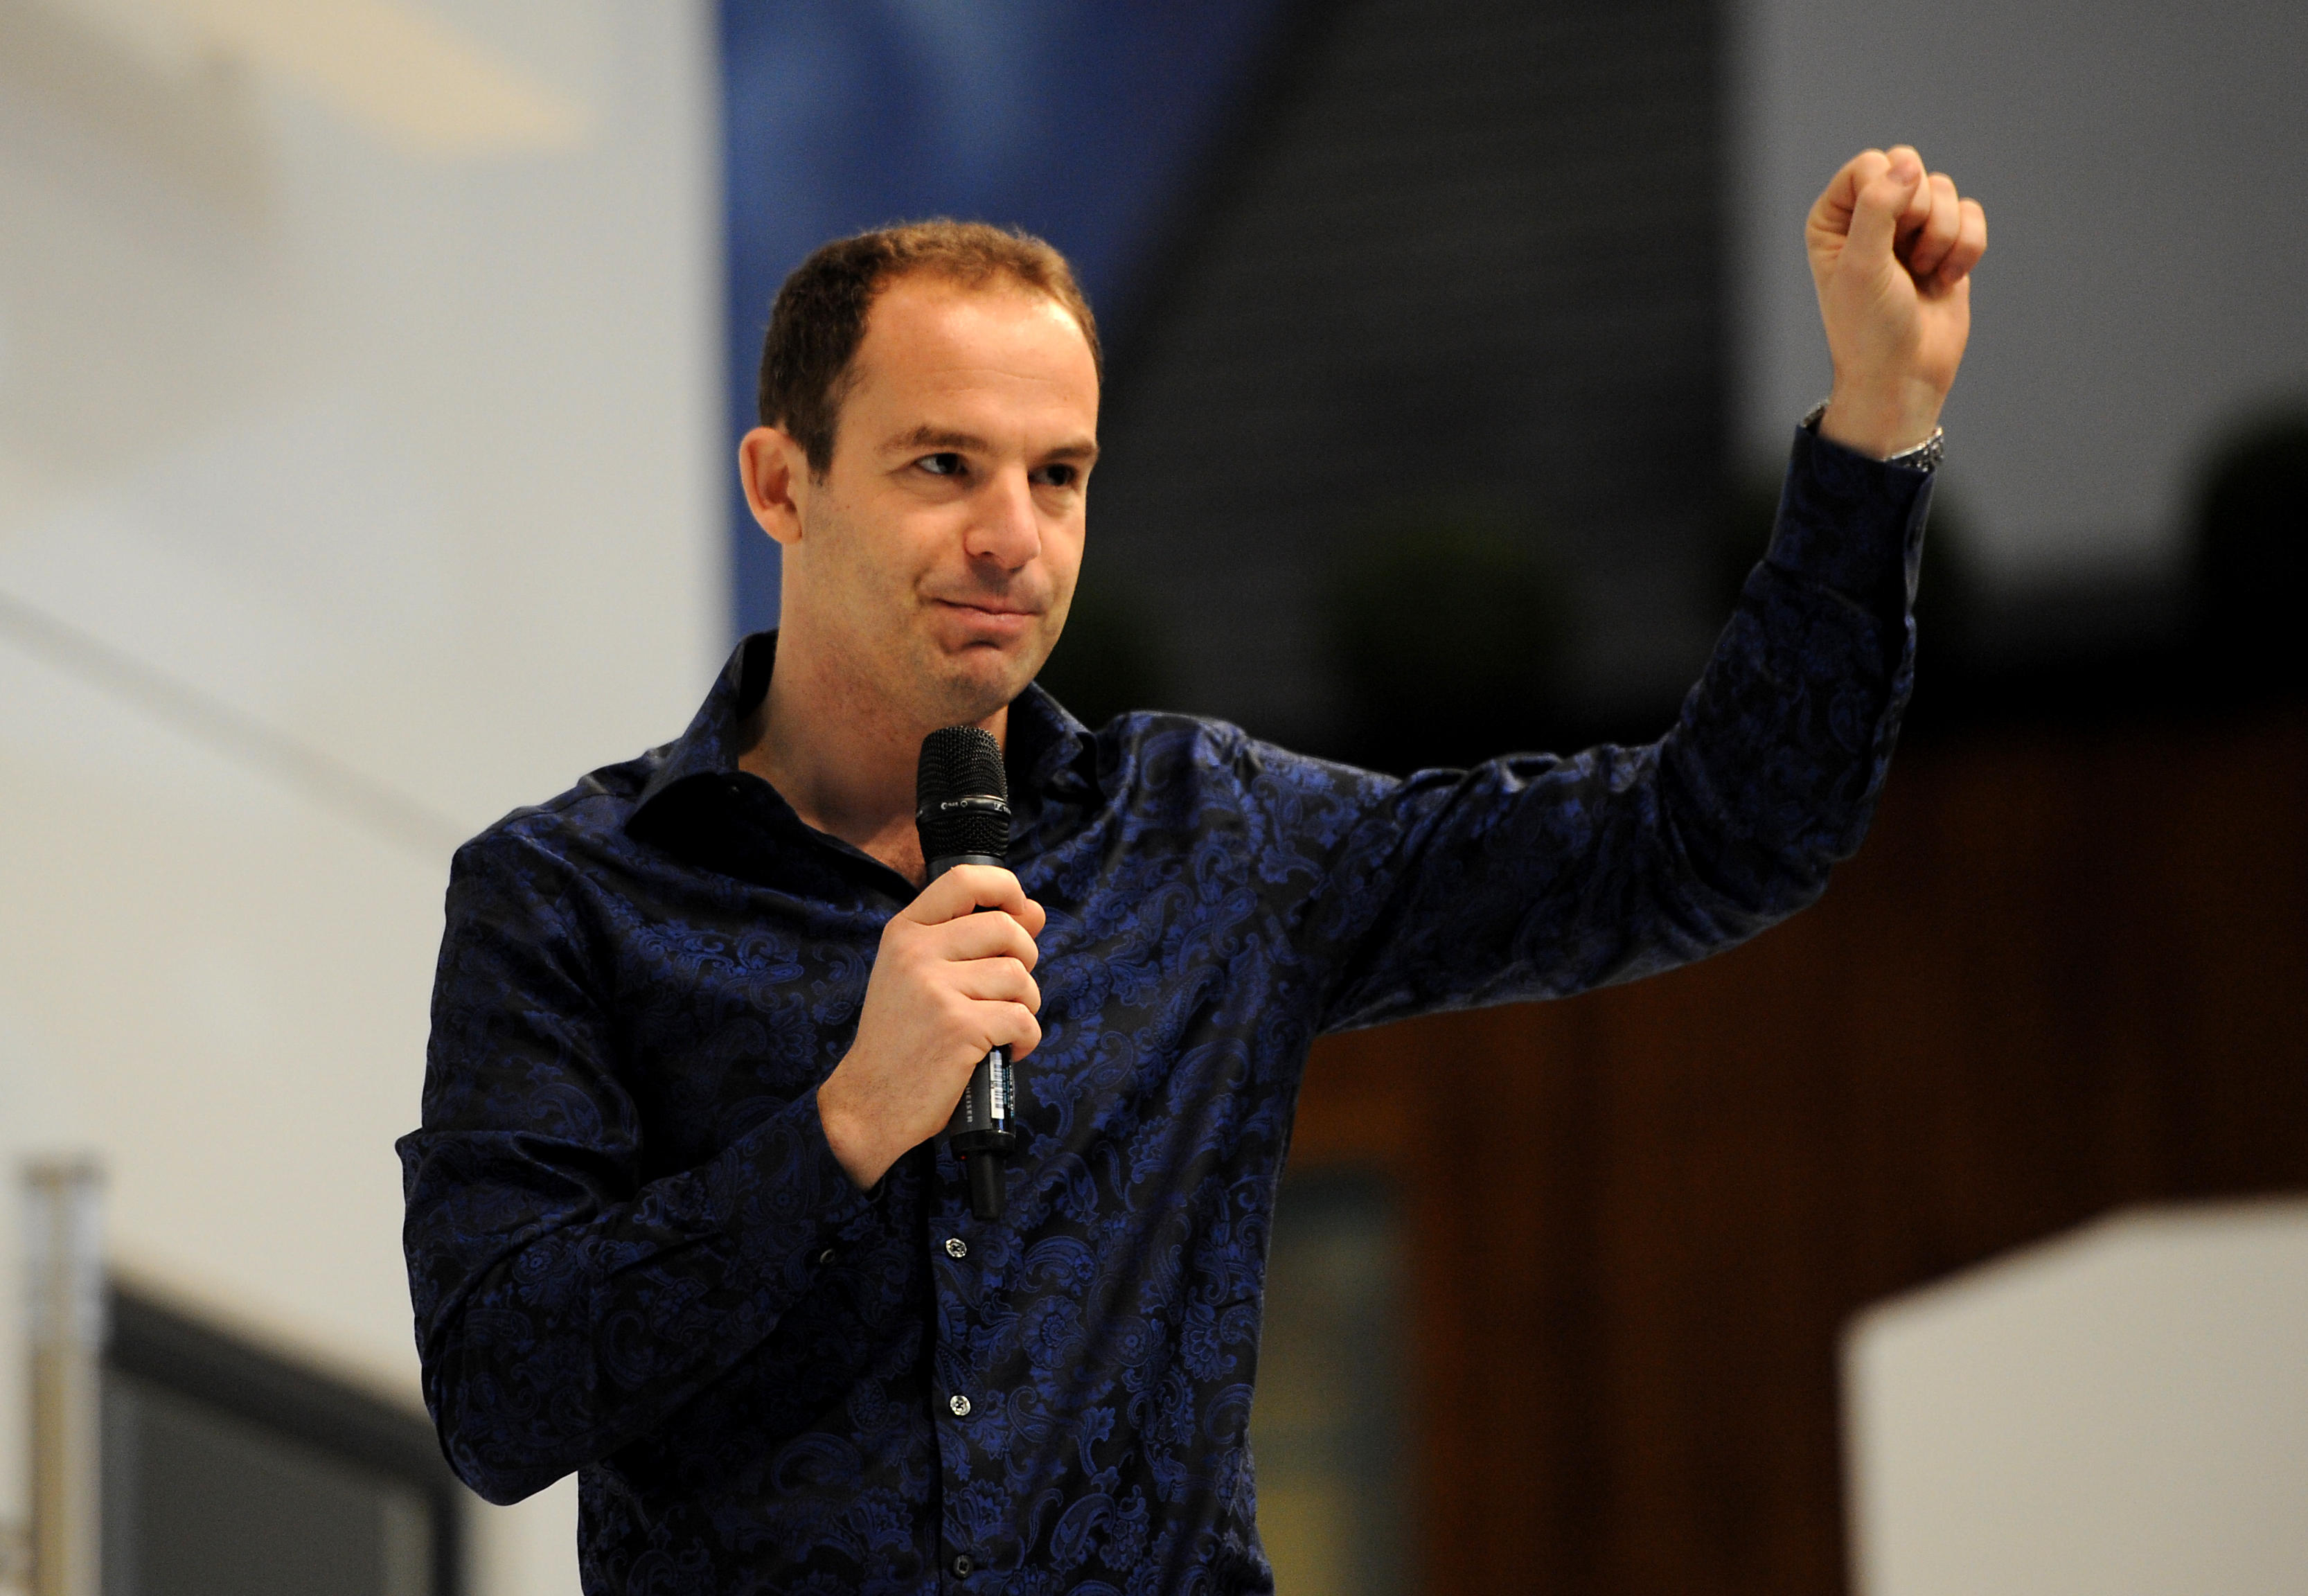 A medium-distance photo of Martin Lewis in a dark blue button down shirt and holding a microphone in his right hand while holding up his right fist.